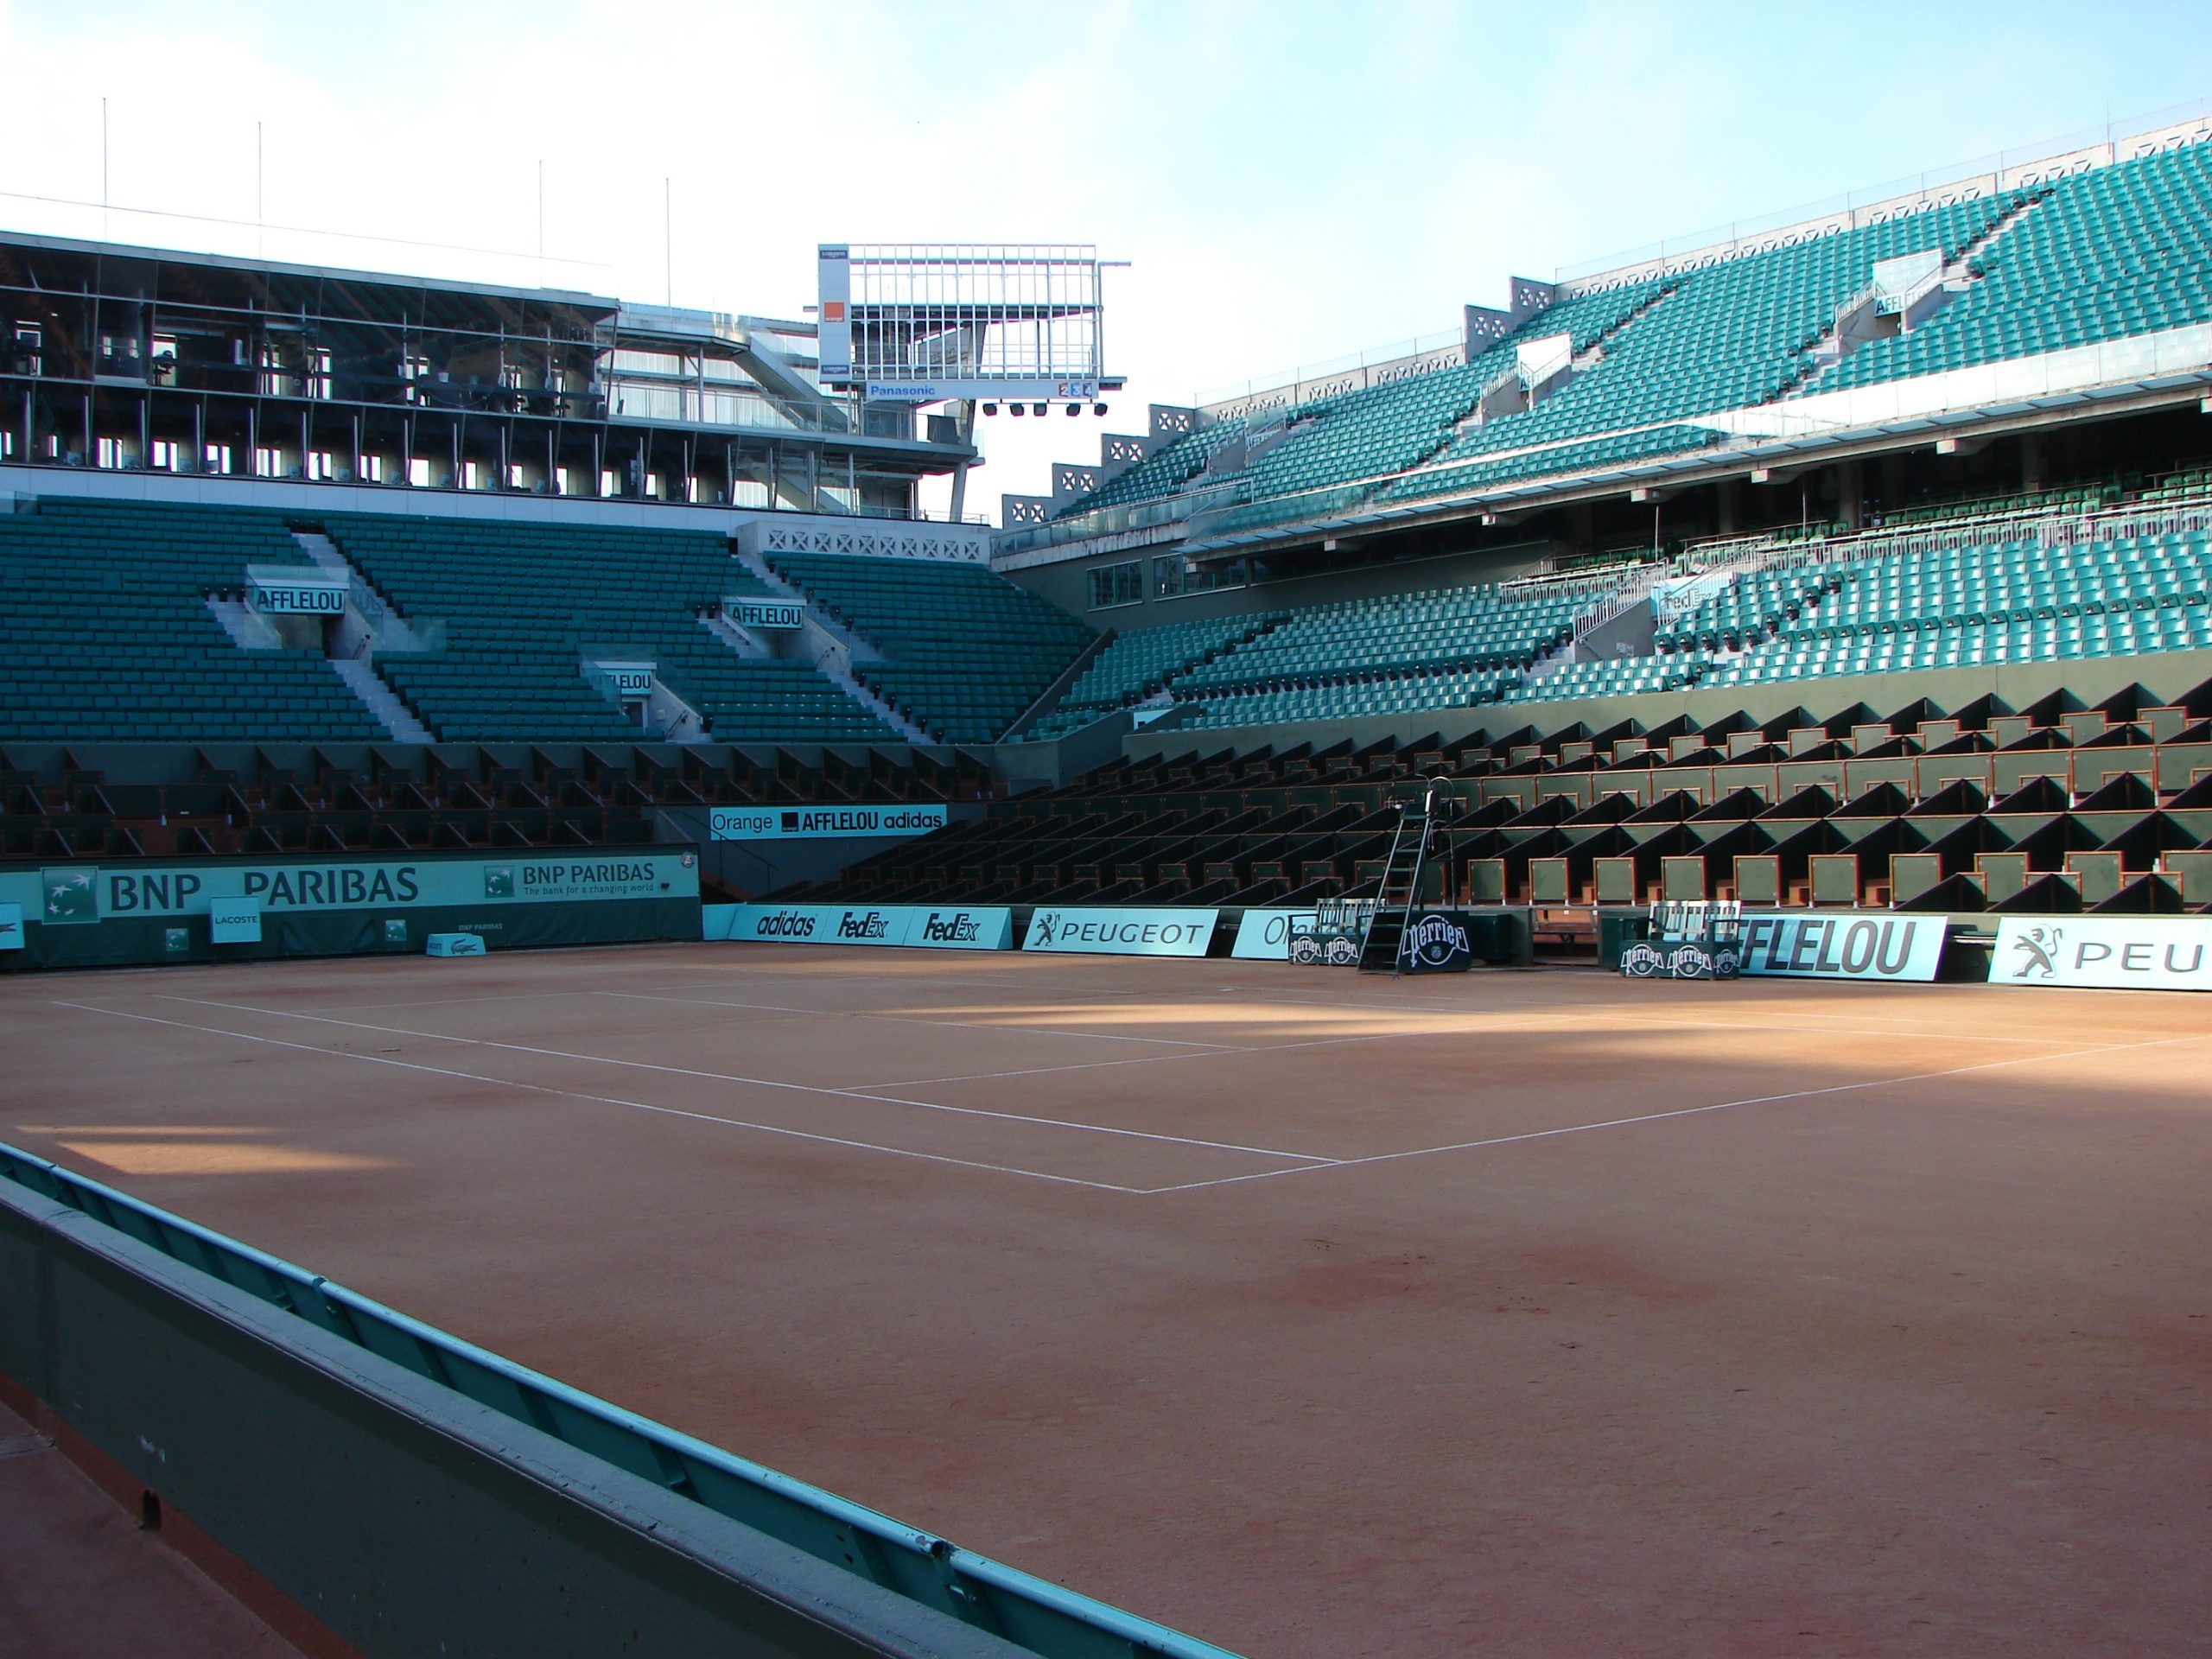 Court Philippe Chatrier at the Stade Roland-Garros, host of the French Open